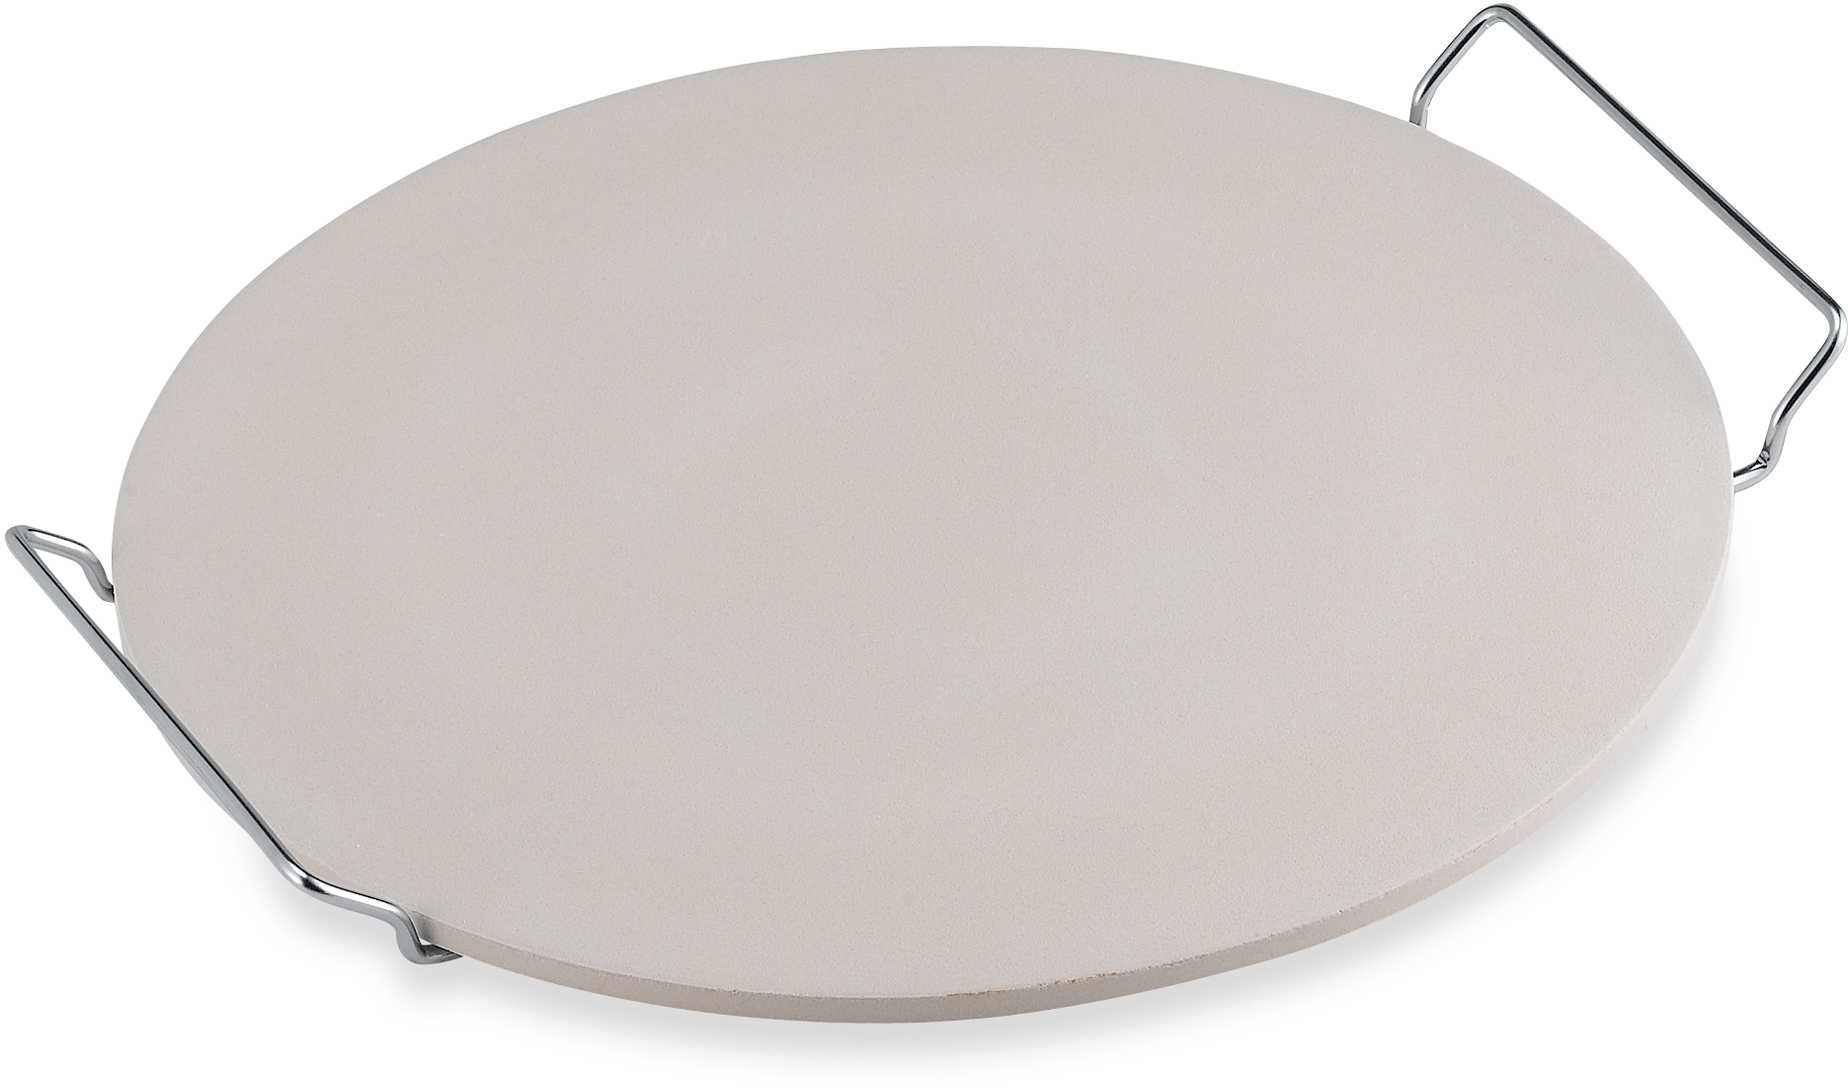 Bed bath beyond pizza stone - Bialetti Round Pizza Stone Bed Bath Beyond